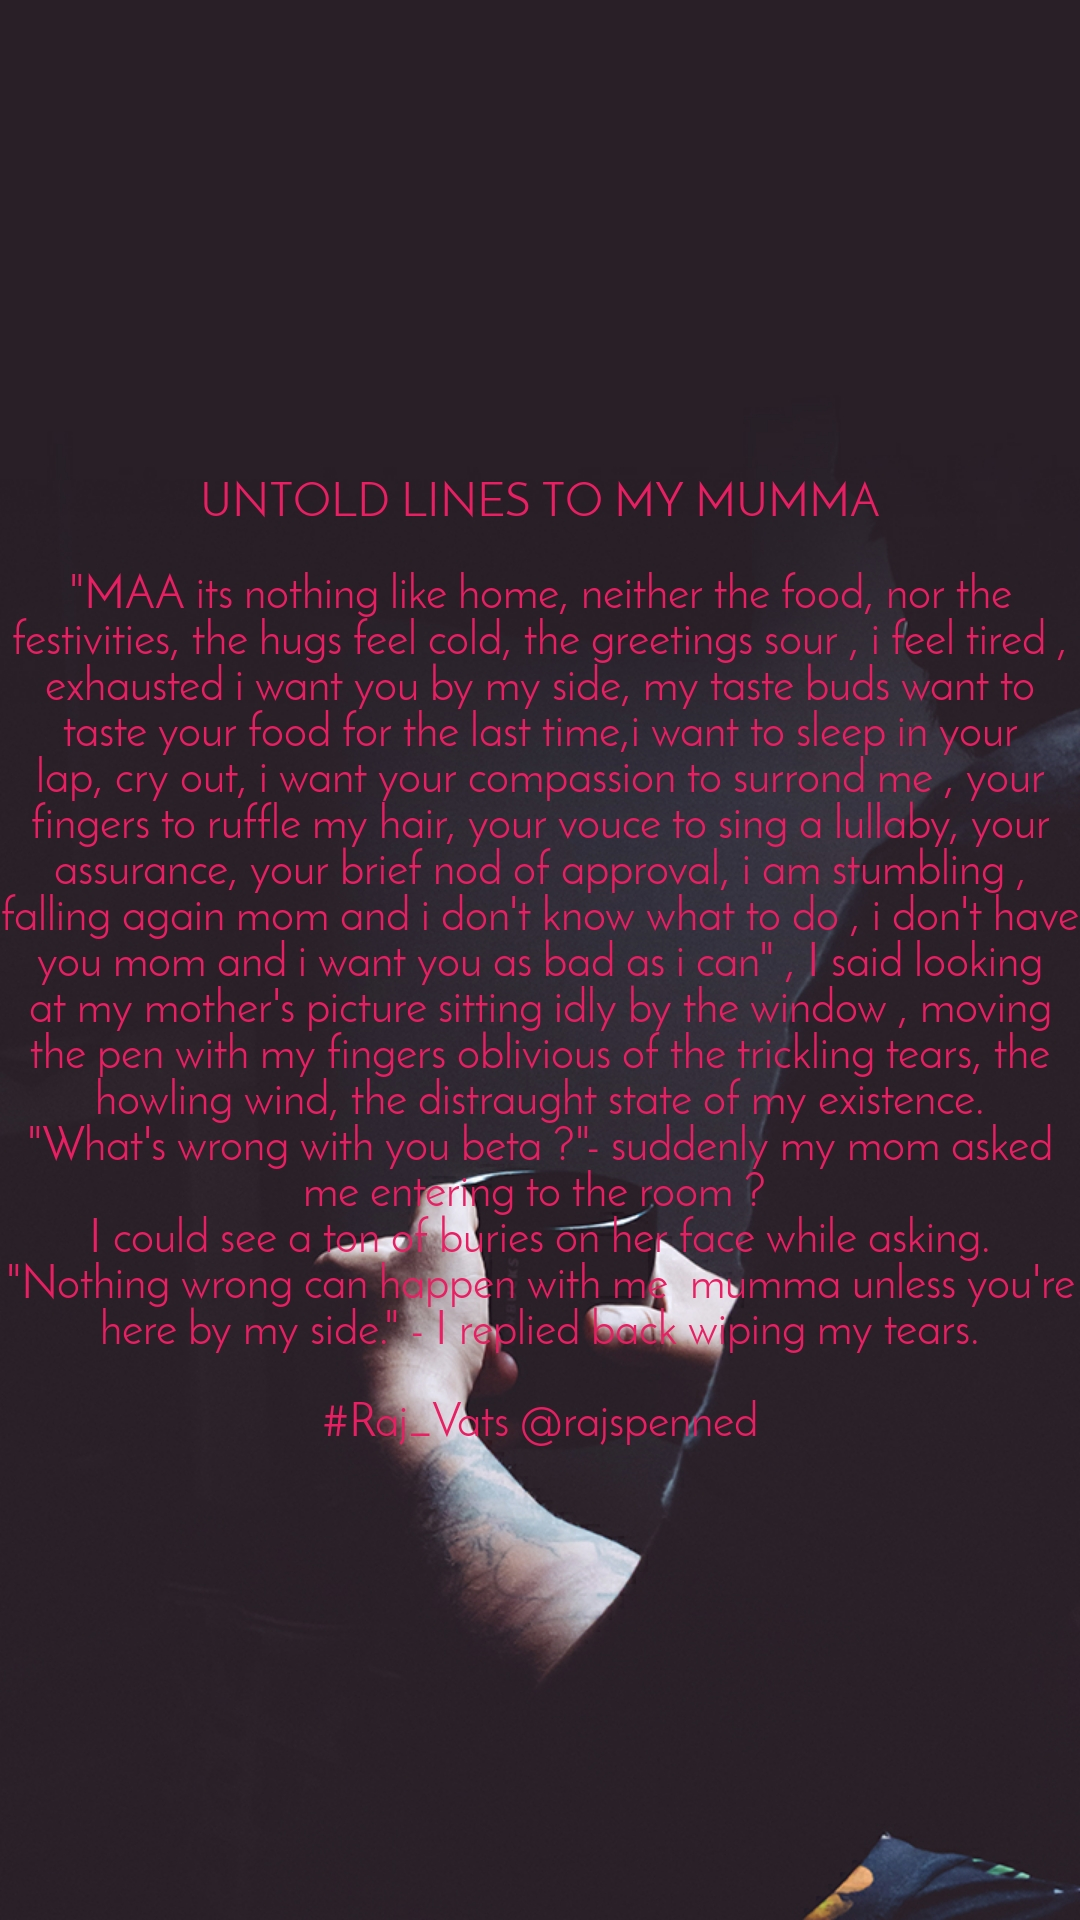 """UNTOLD LINES TO MY MUMMA  """"MAA its nothing like home, neither the food, nor the festivities, the hugs feel cold, the greetings sour , i feel tired , exhausted i want you by my side, my taste buds want to taste your food for the last time,i want to sleep in your lap, cry out, i want your compassion to surrond me , your fingers to ruffle my hair, your vouce to sing a lullaby, your assurance, your brief nod of approval, i am stumbling , falling again mom and i don't know what to do , i don't have you mom and i want you as bad as i can"""" , I said looking at my mother's picture sitting idly by the window , moving the pen with my fingers oblivious of the trickling tears, the howling wind, the distraught state of my existence. """"What's wrong with you beta ?""""- suddenly my mom asked me entering to the room ?  I could see a ton of buries on her face while asking. """"Nothing wrong can happen with me  mumma unless you're here by my side."""" - I replied back wiping my tears.  #Raj_Vats @rajspenned"""